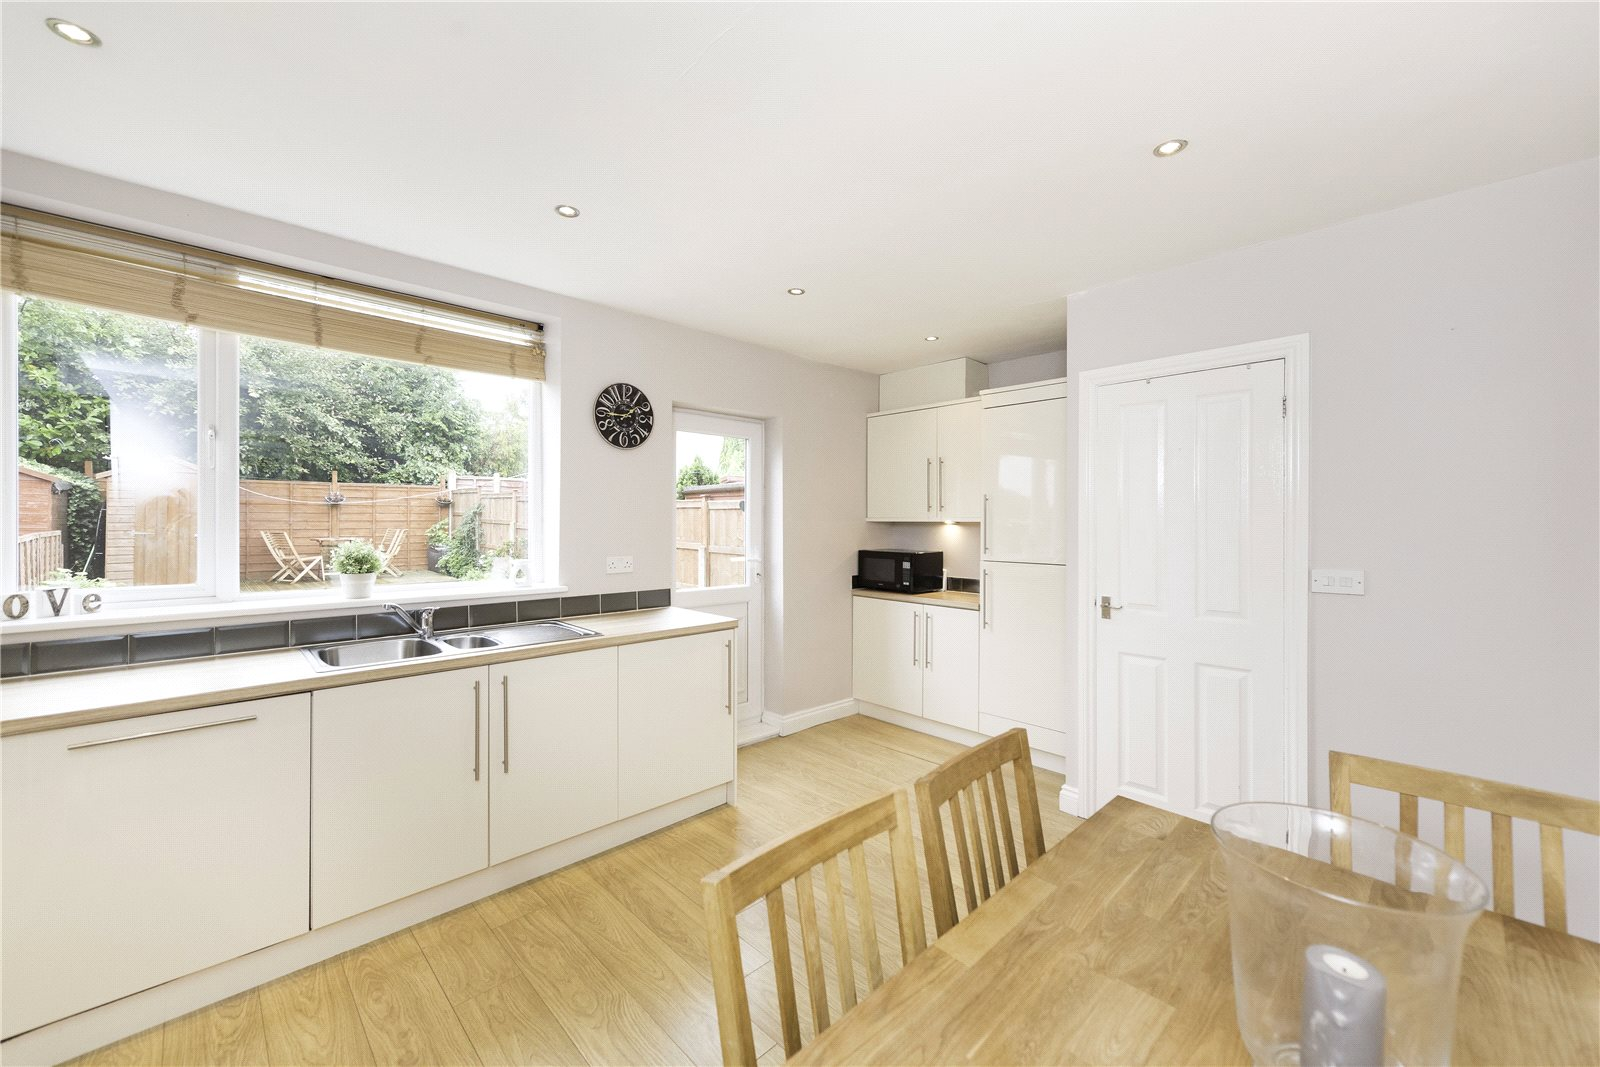 Whitegates bramley 3 bedroom house for sale in smalewell for Perfect kitchen bramley